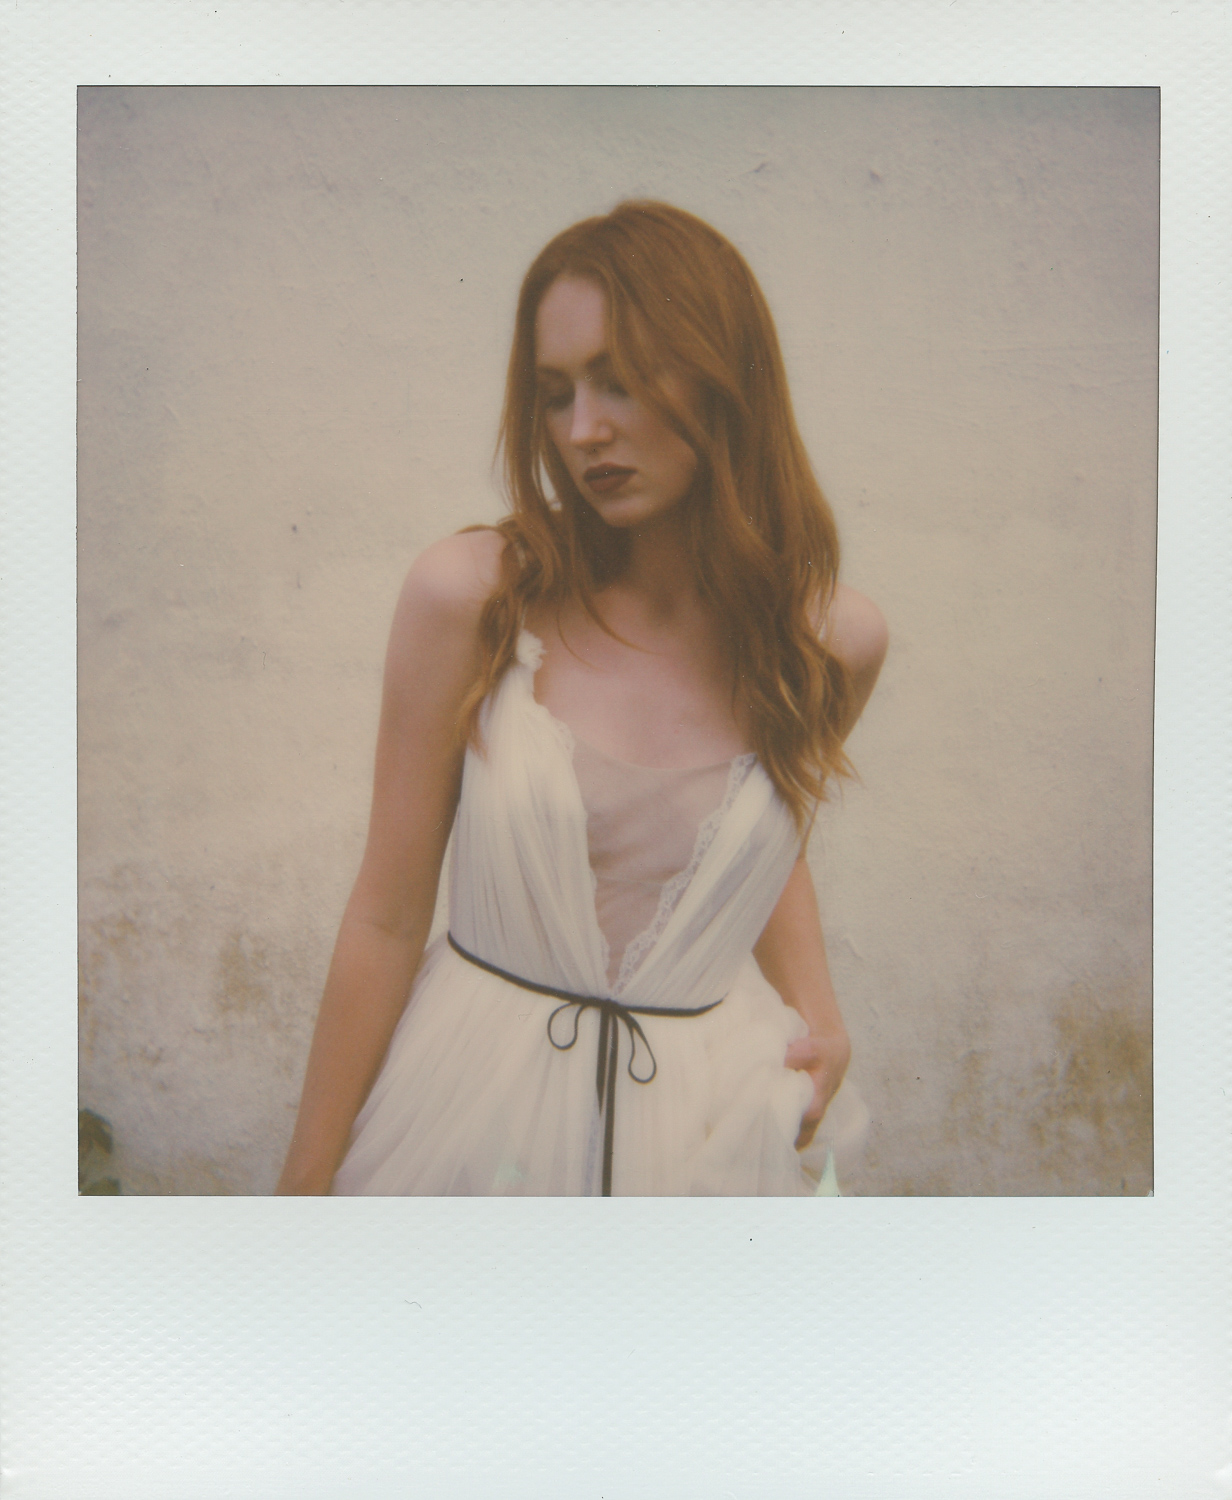 Ryan Stadler instant photography